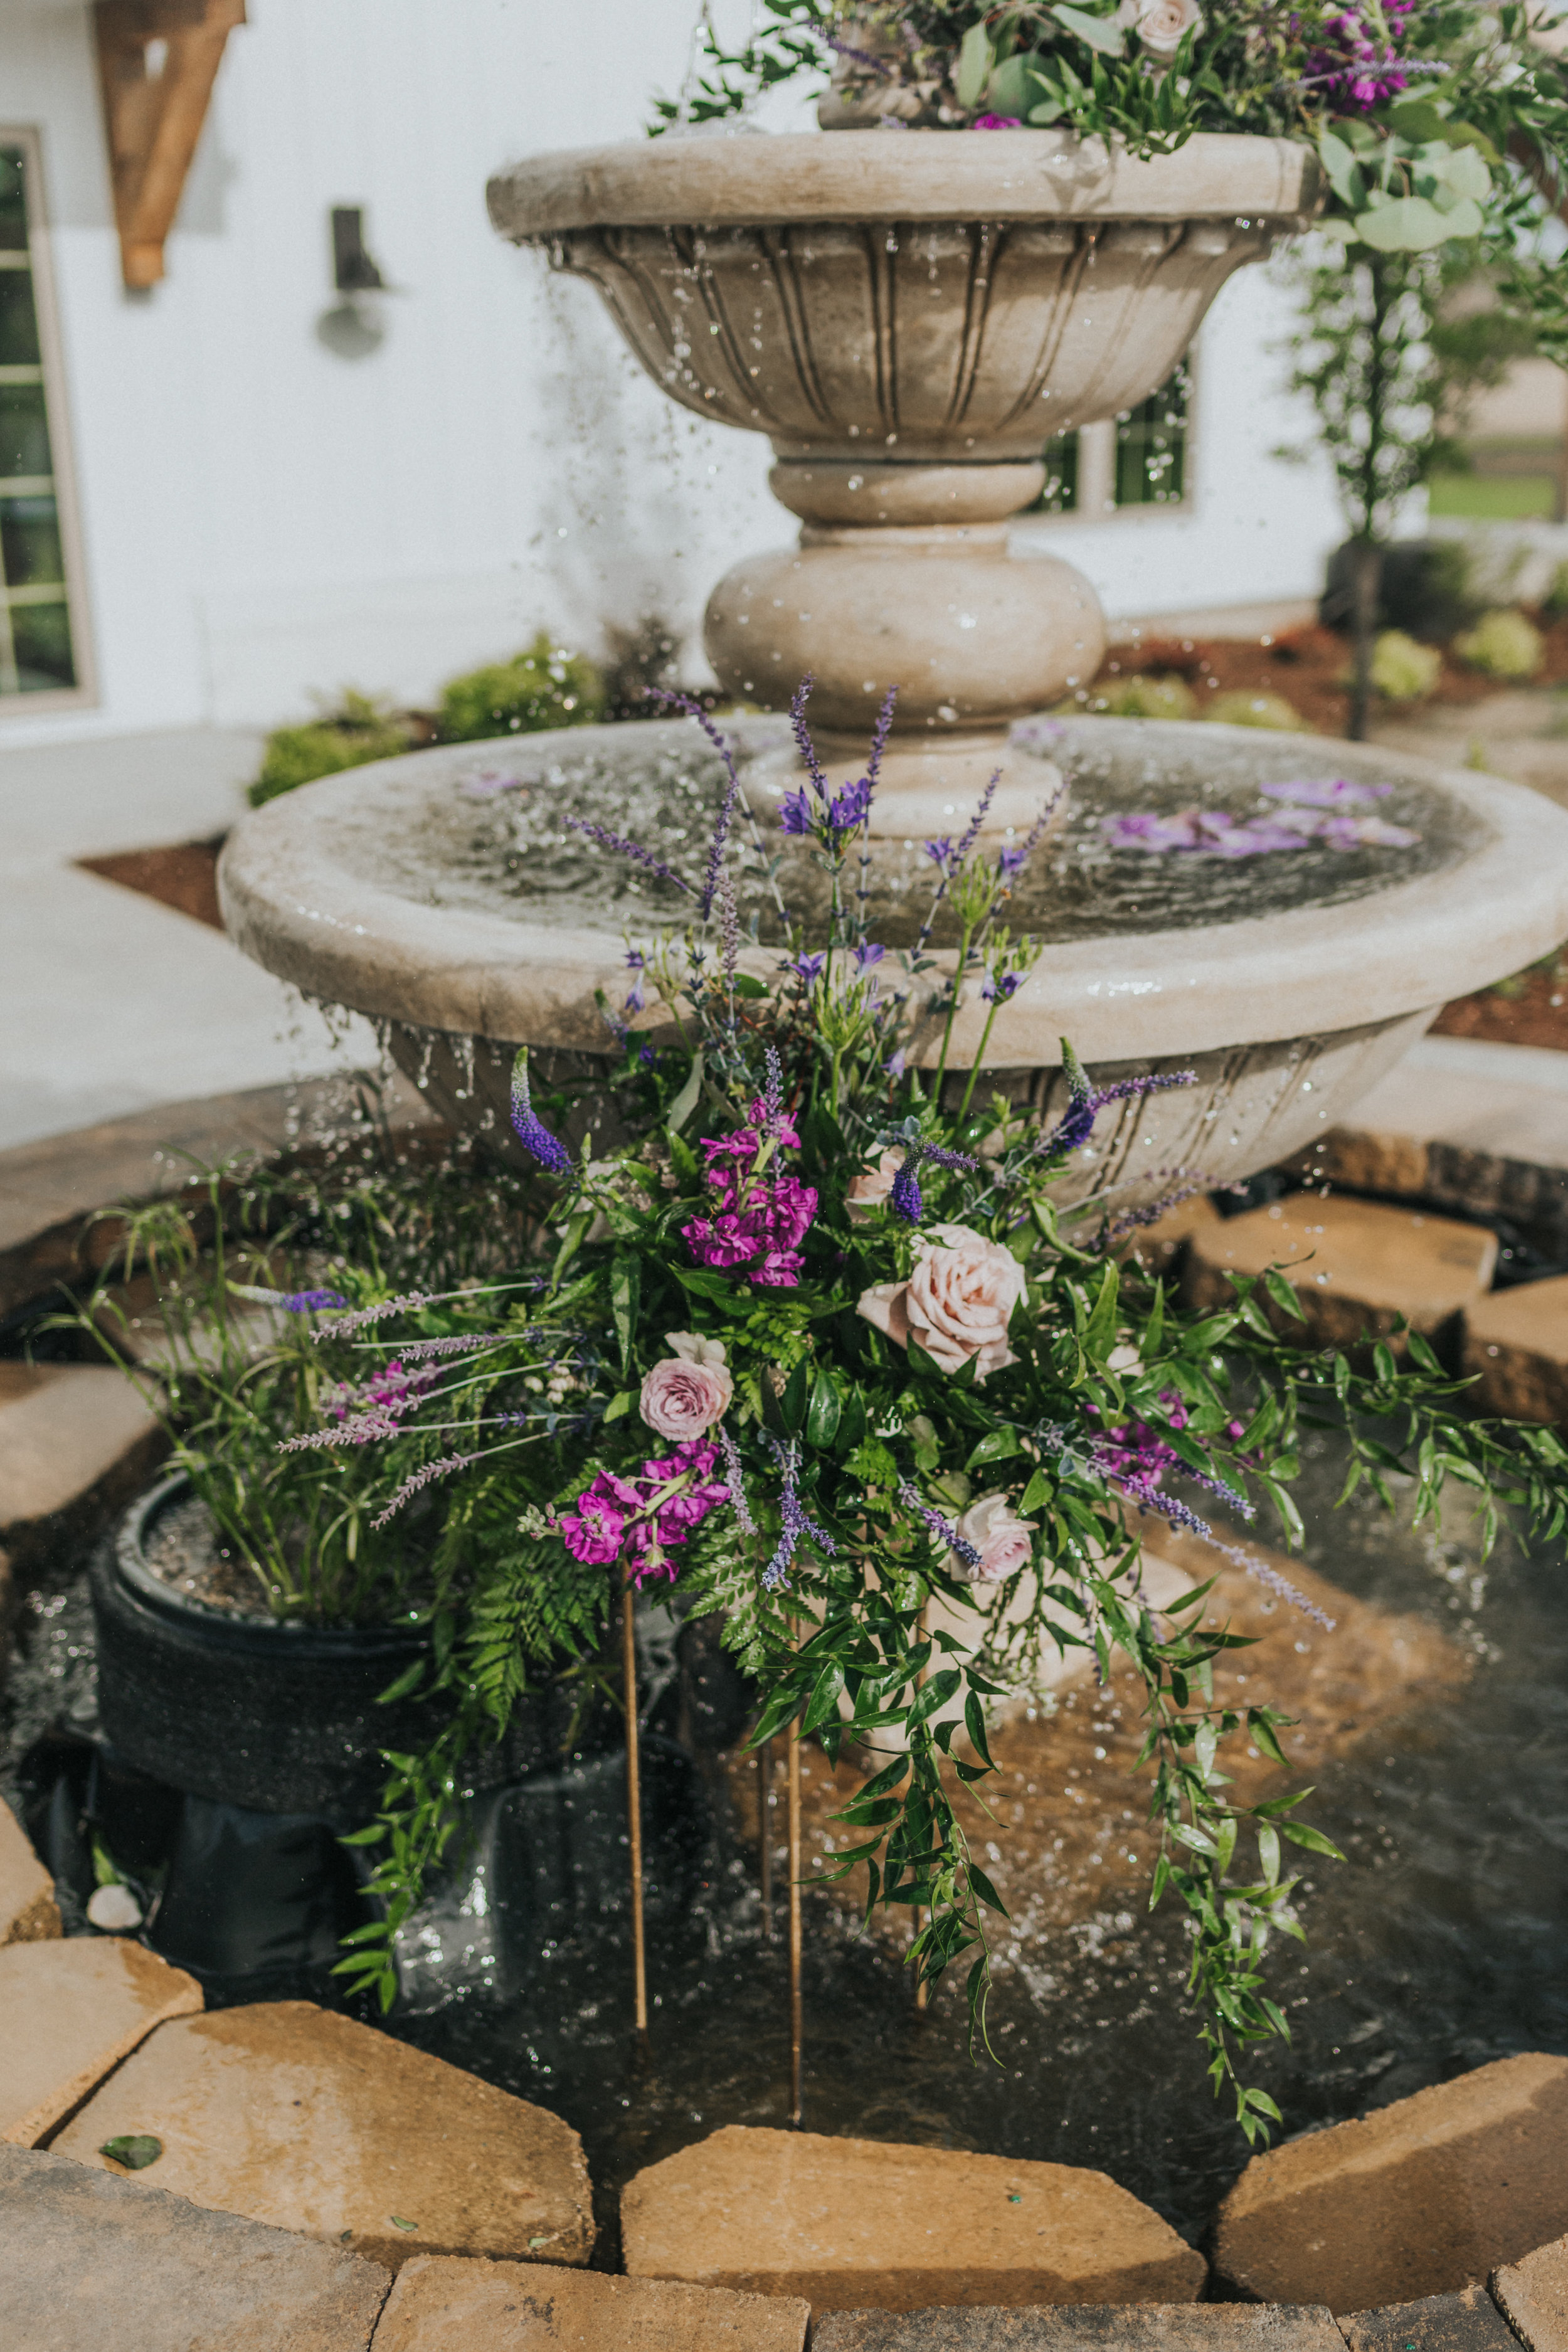 238 tiny-luxe-weddings-iowa-venue-photogeraphy-palace.jpg